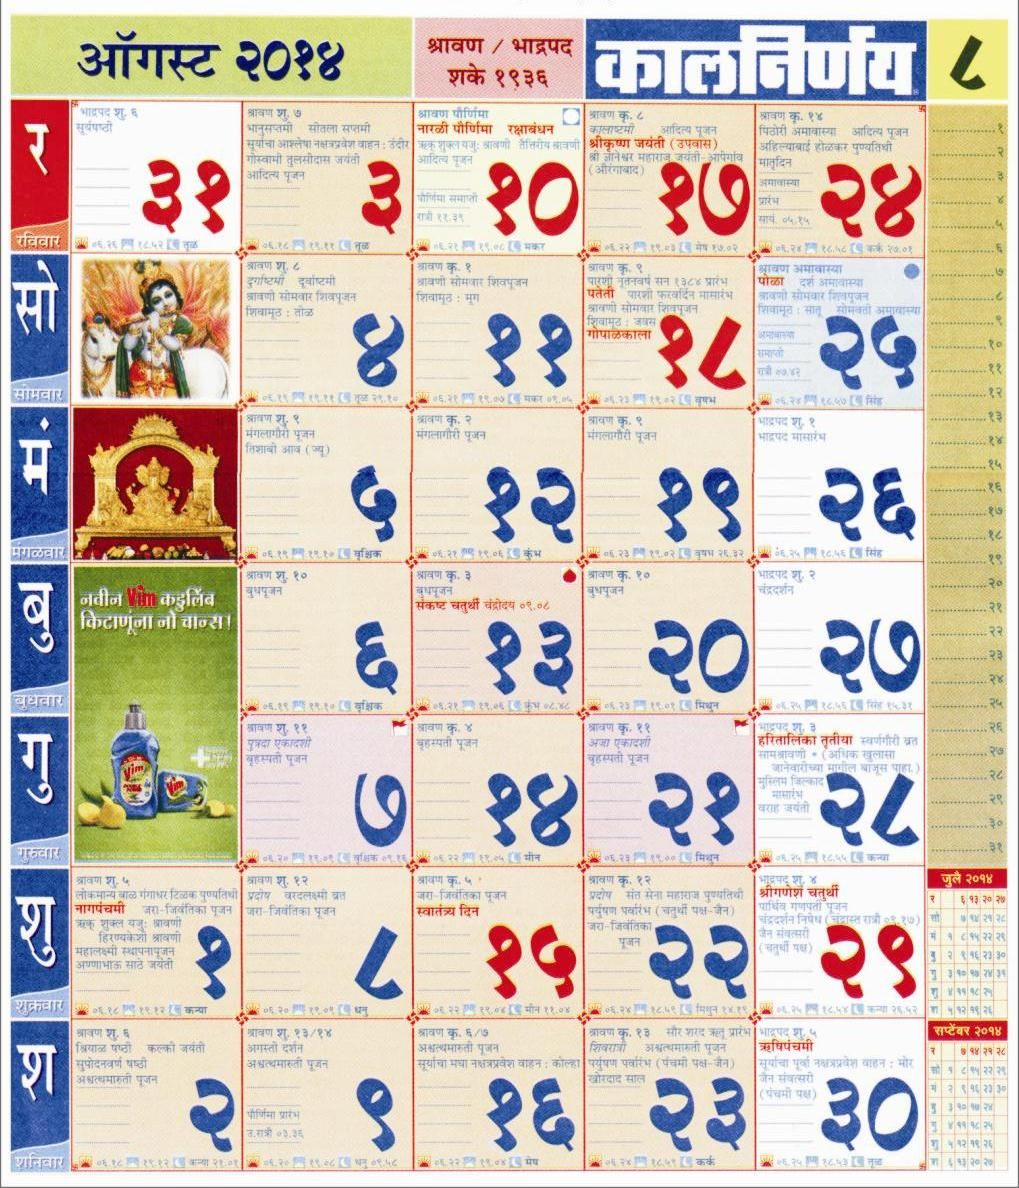 Beautiful 100 Free Resume Builder Thick 1099 Template Excel Shaped 15 Year Old Resume Sample 2 Page Resume Design Young 2014 Calendar Template Monthly Bright2015 Calendar Planner Template Kalnirnay August 2014 Marathi Calendar | Kalnirnay 2014 Calendar ..